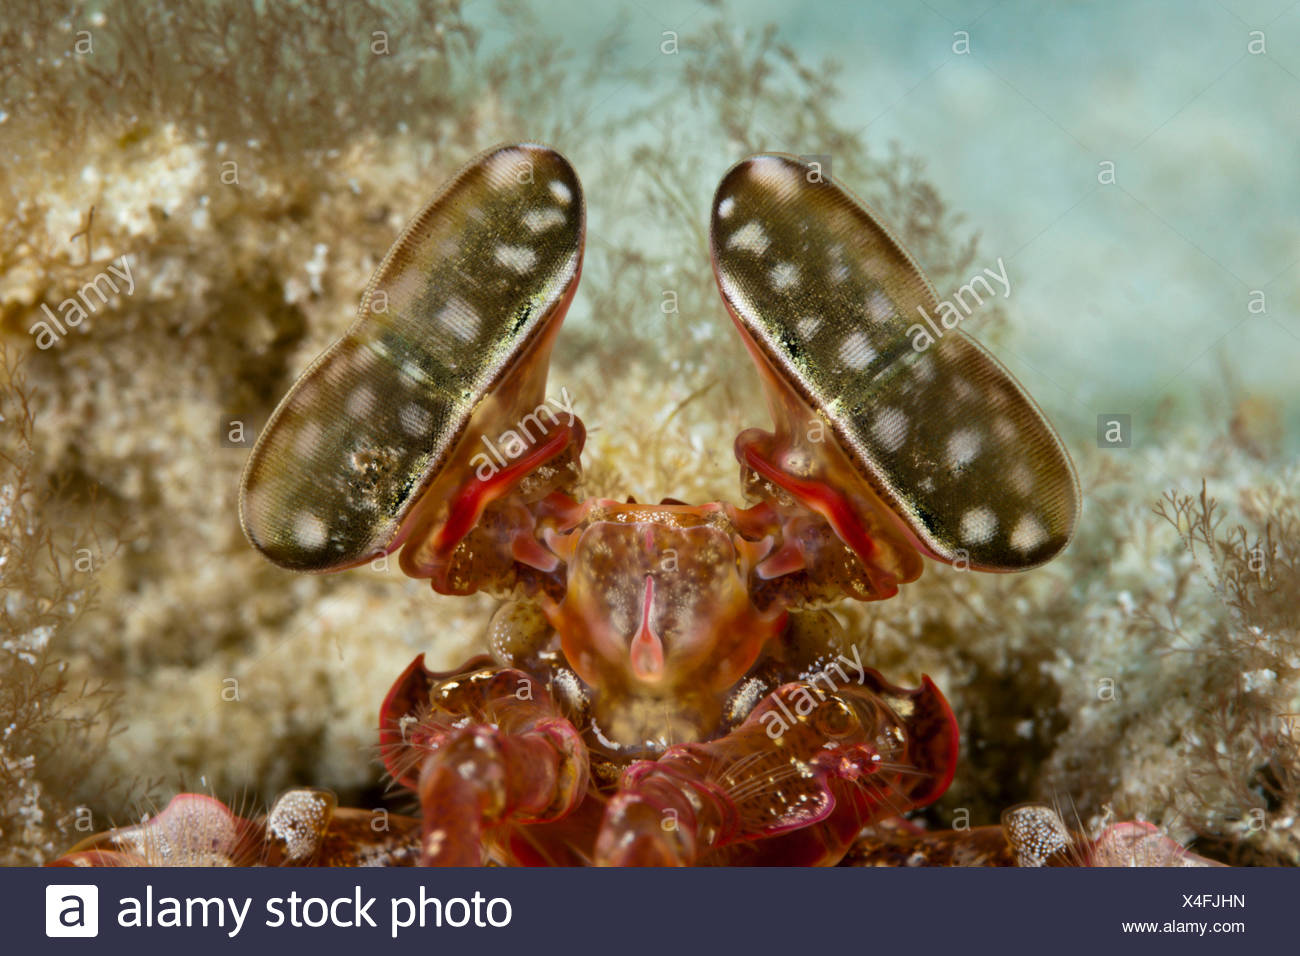 To compound eyes of a spear-catch fright cancer, Lysiosquillina sp., ambon, the Moluccas, Indonesia - Stock Image